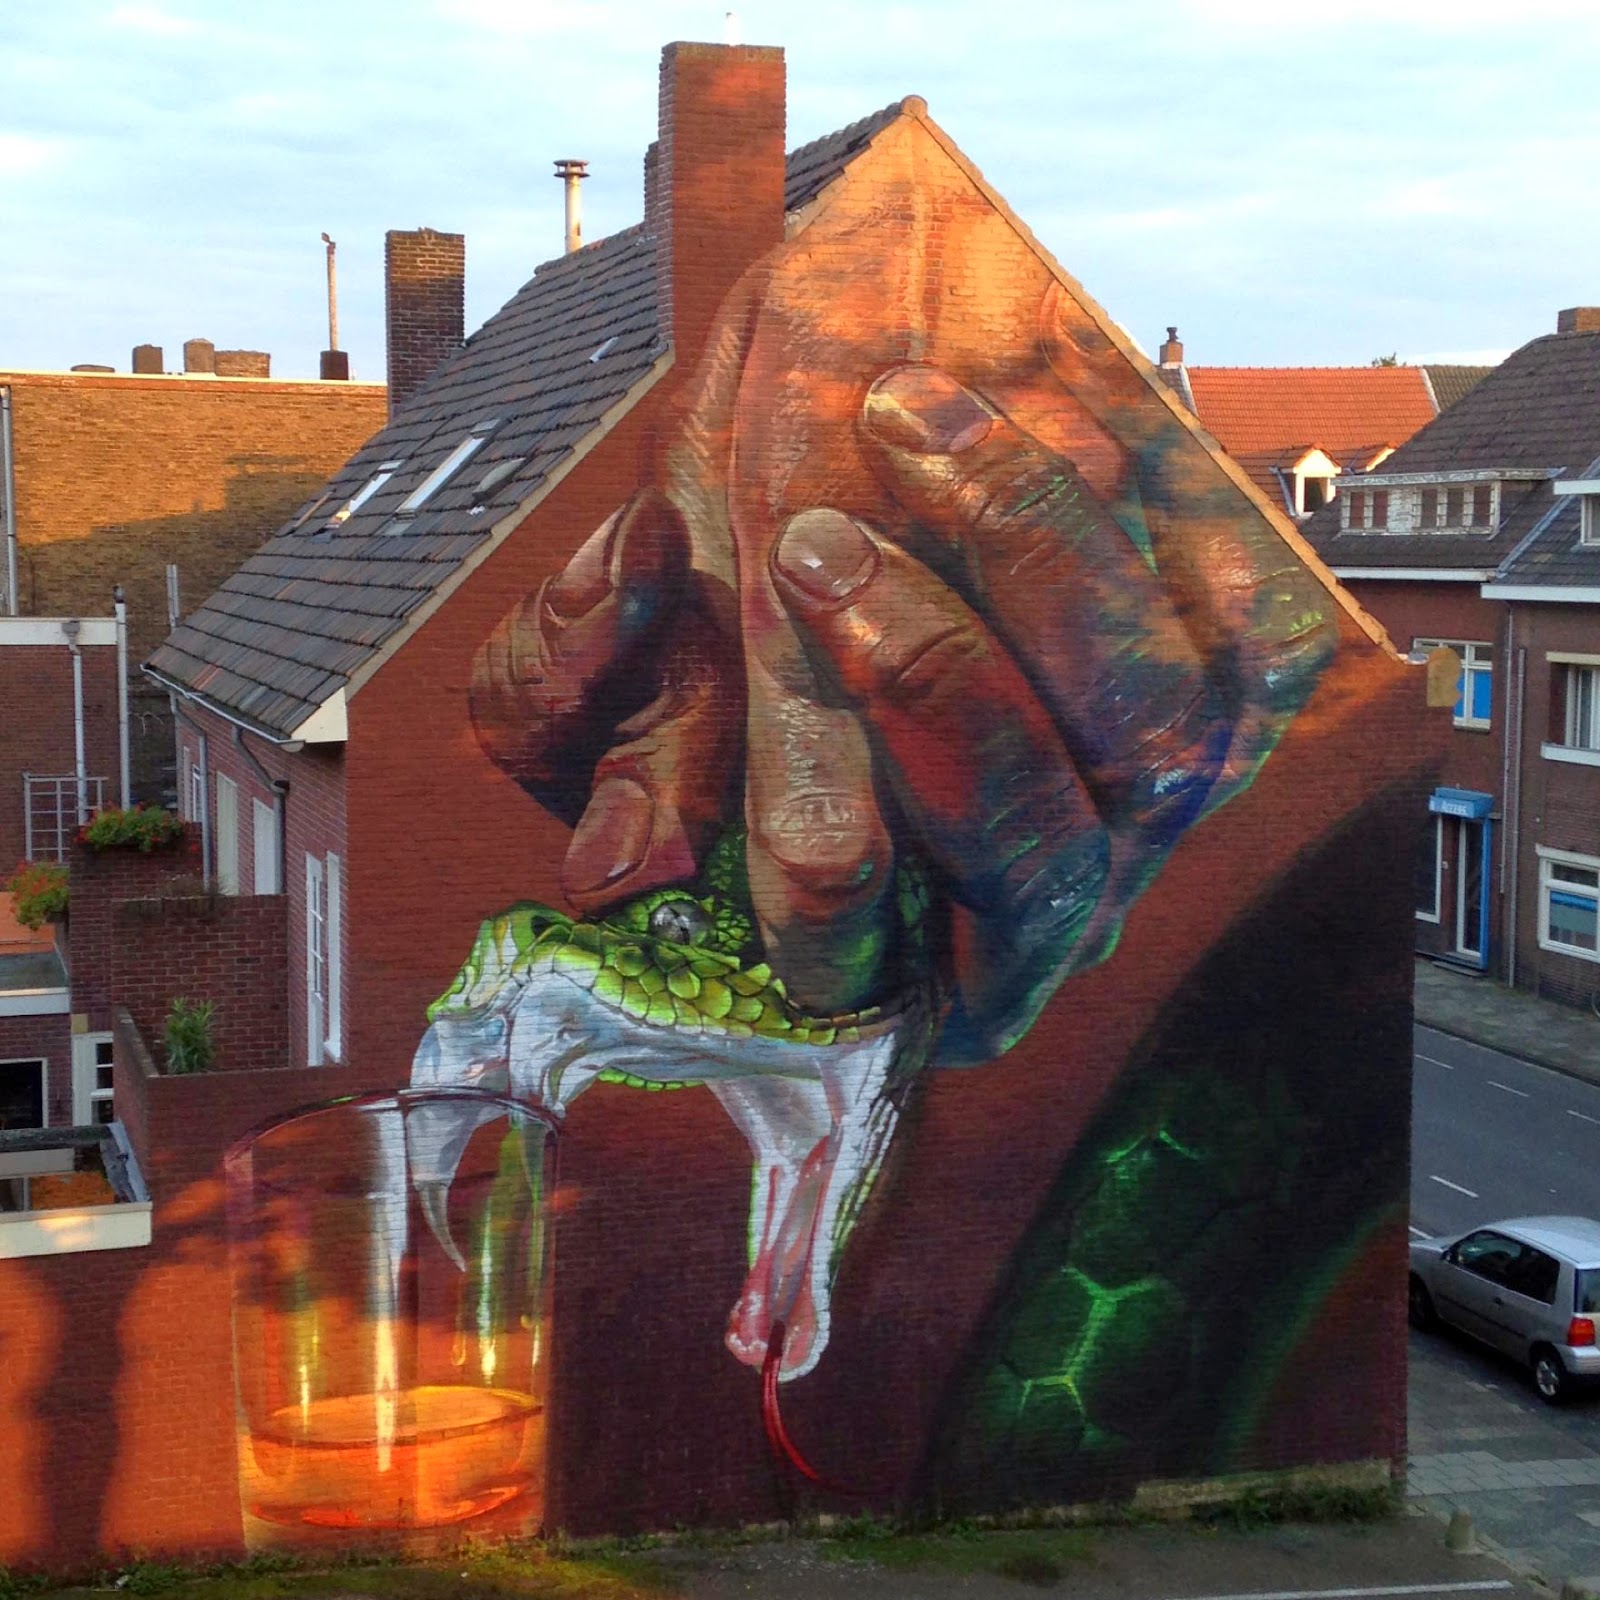 Andreas von Chrzanowski aka Case Ma'Claim is currently in Netherlands where he just wrapped up this new piece on the streets of Heerlen in Netherlands.